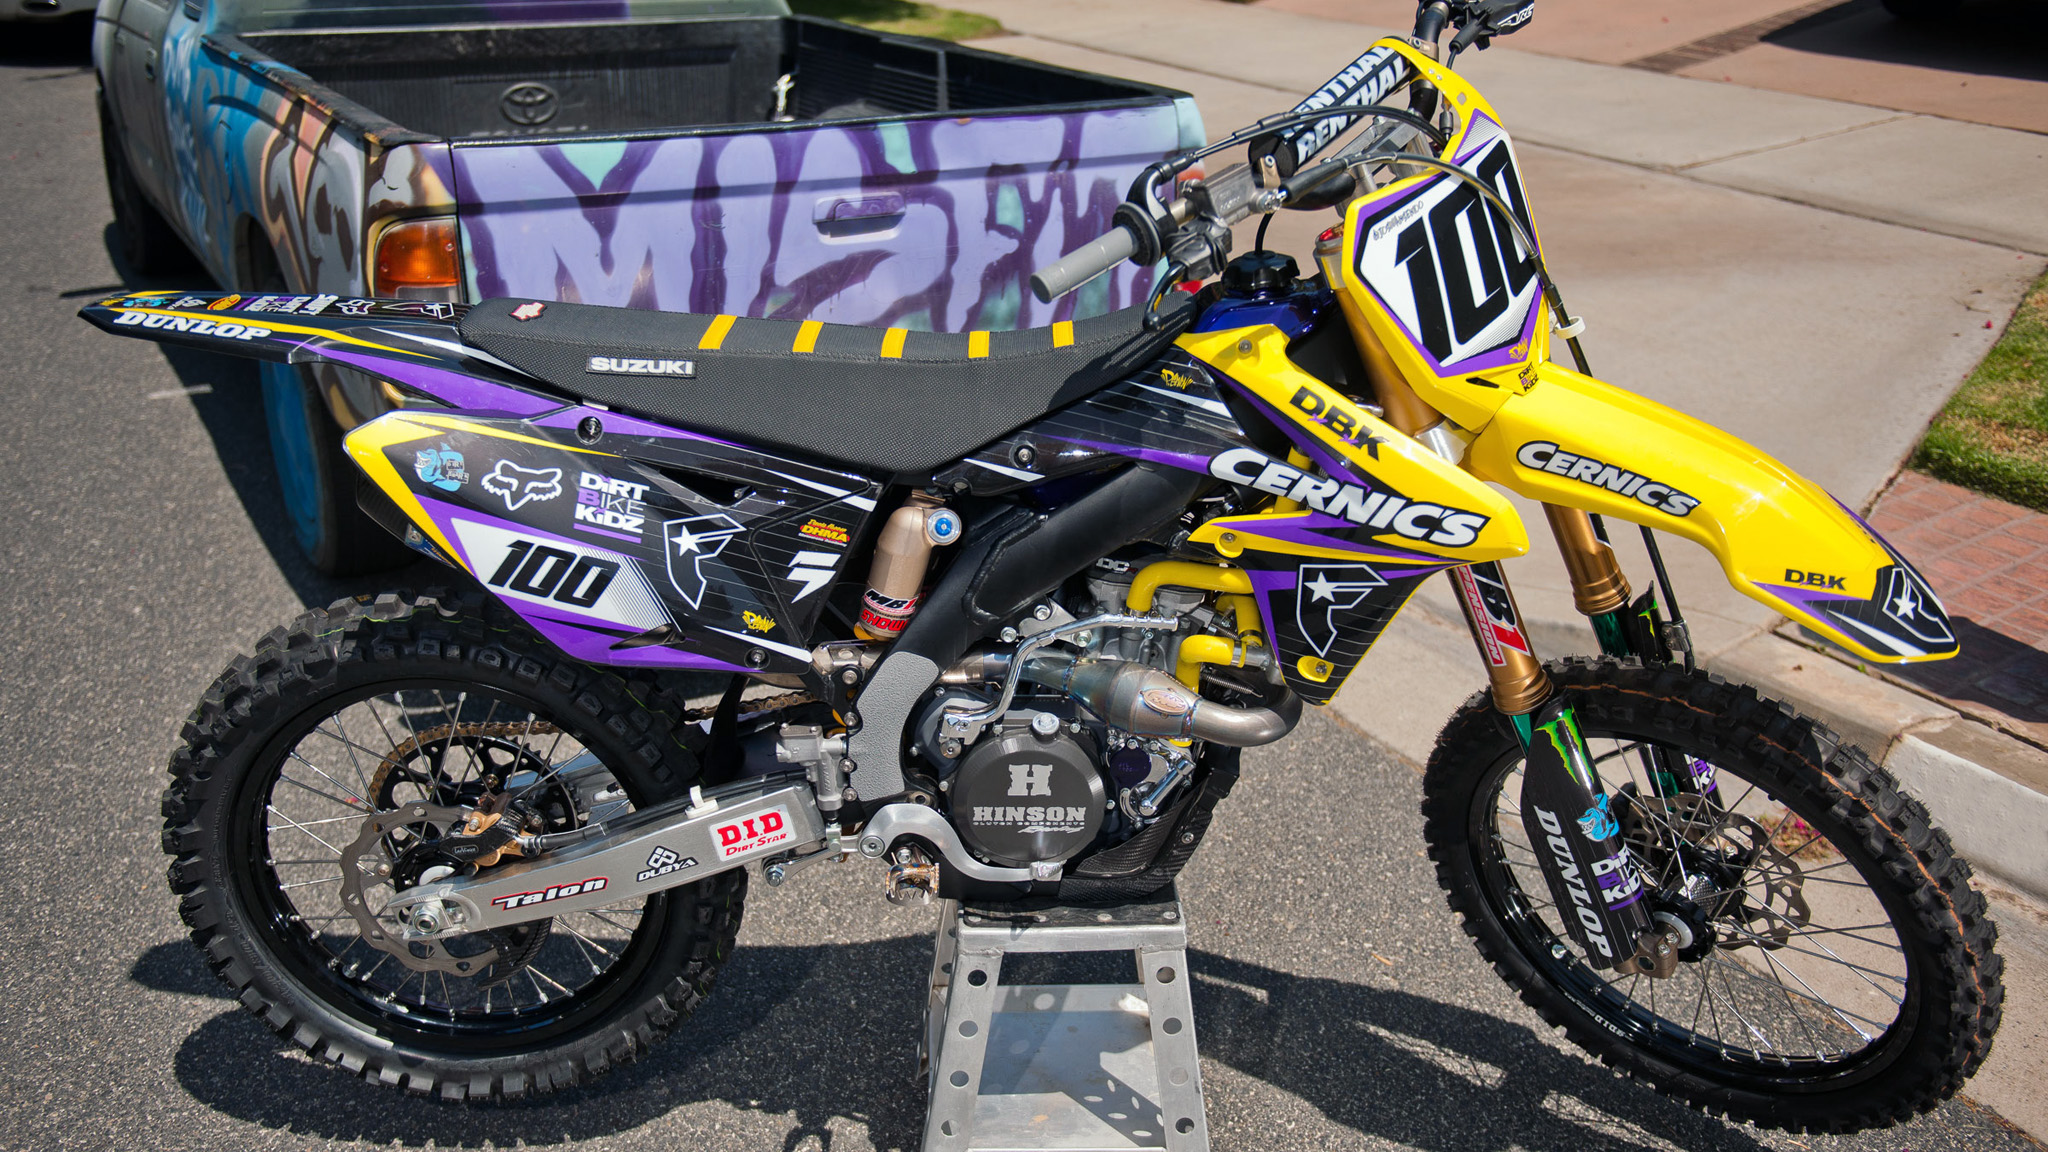 Hanny Lakers Bike Moto Related Motocross Forums Message